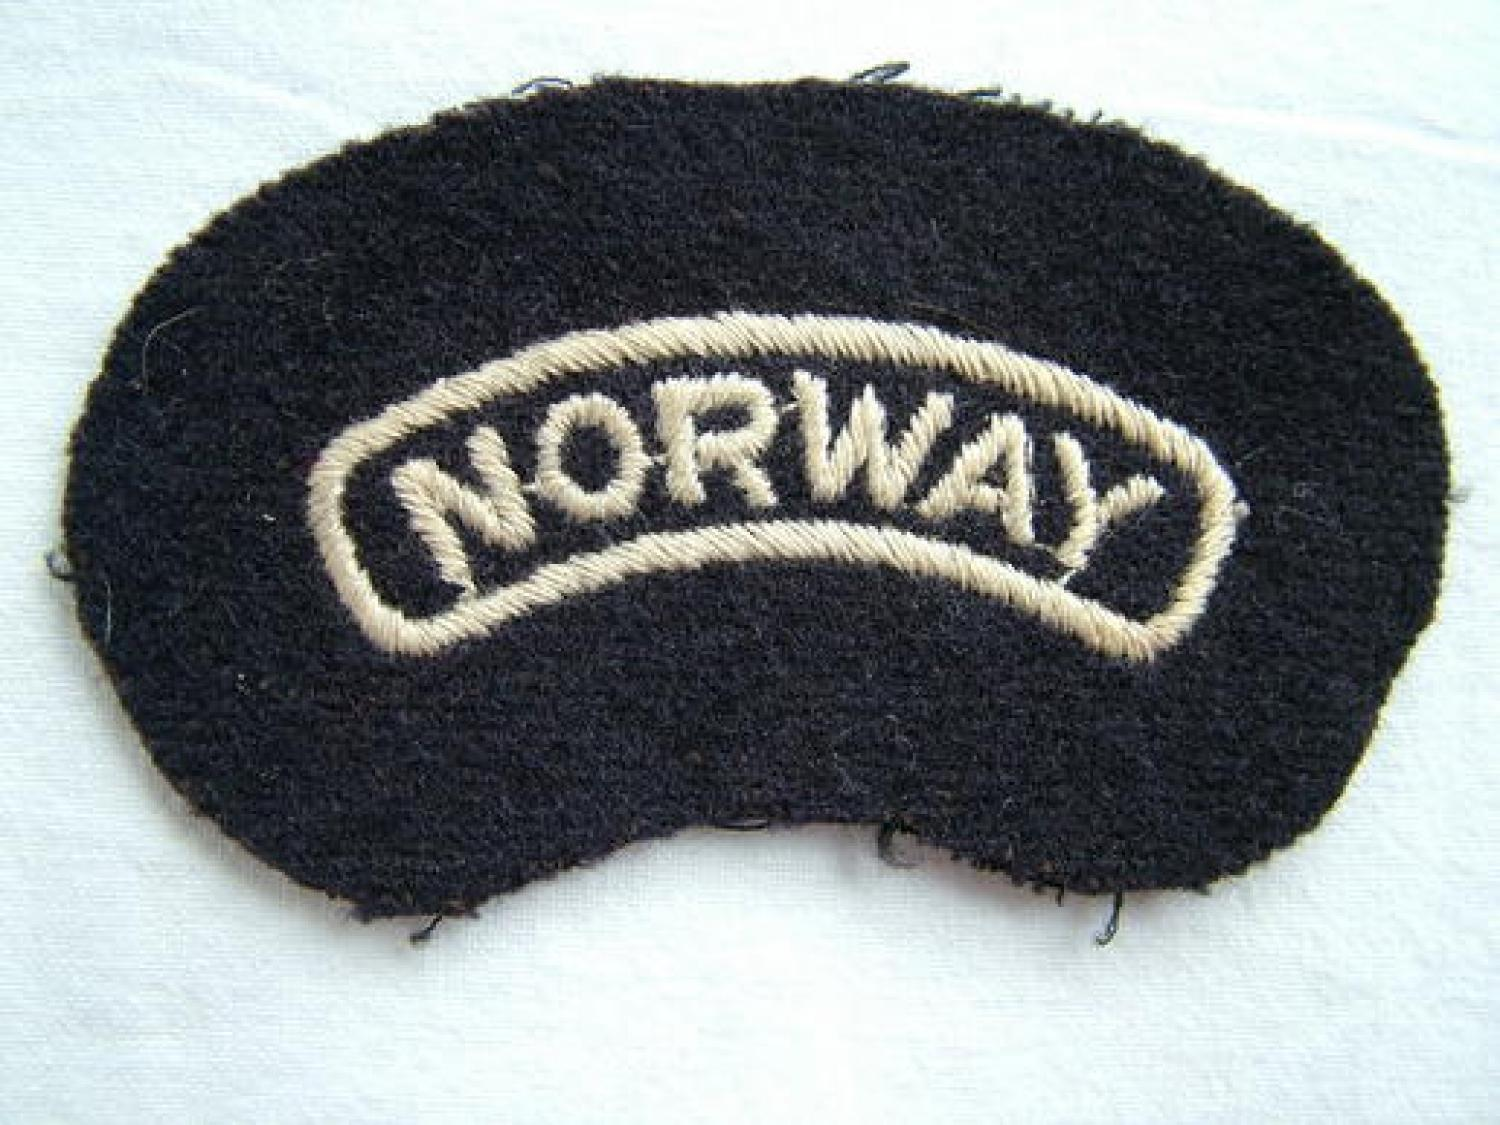 R.A.F. 'Norway' Nationality' Title